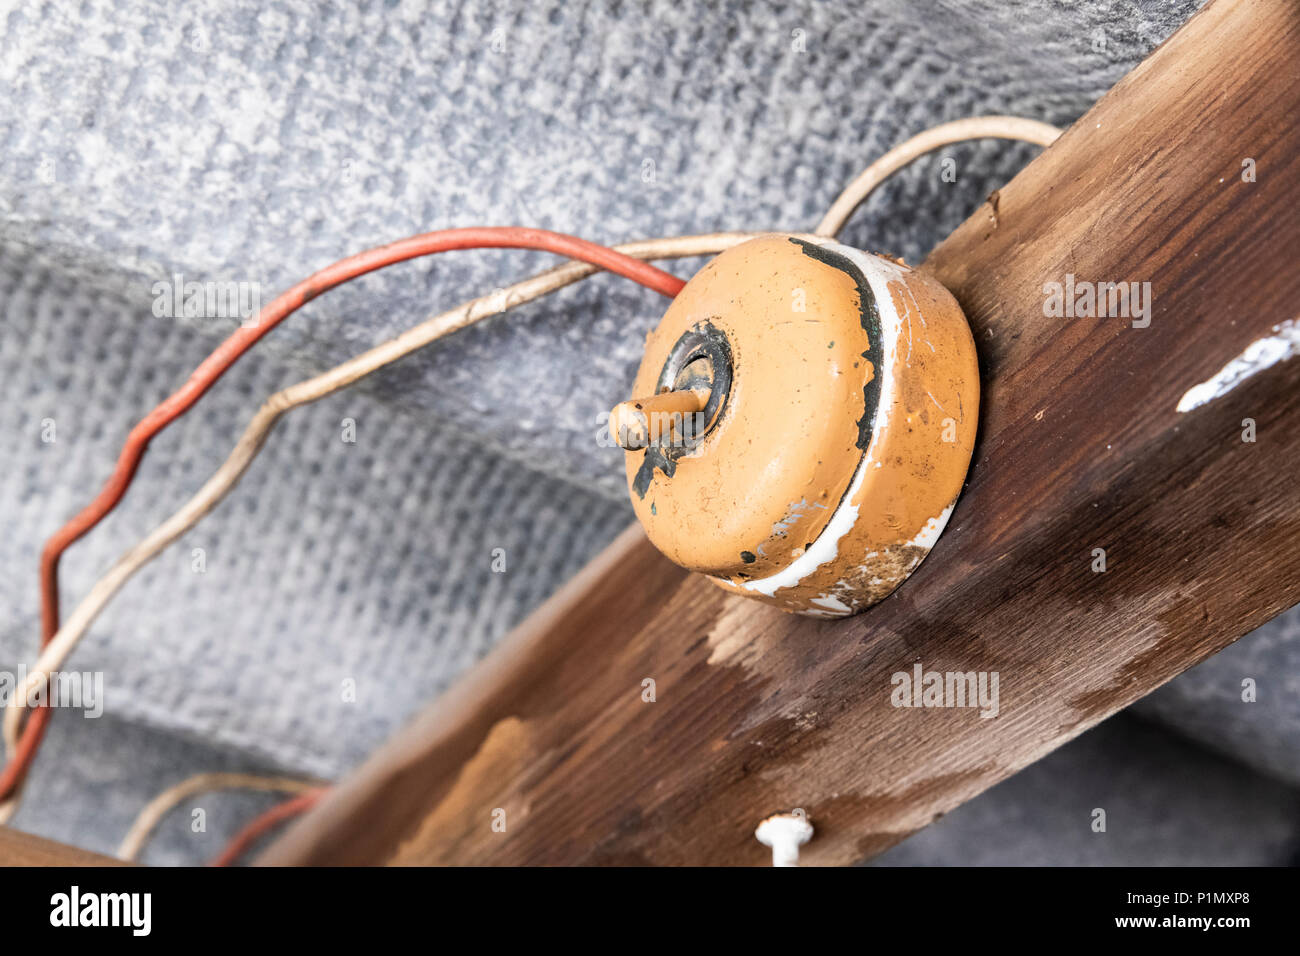 hight resolution of old light switch inside a shed with dangerous wiring and asbestos roof